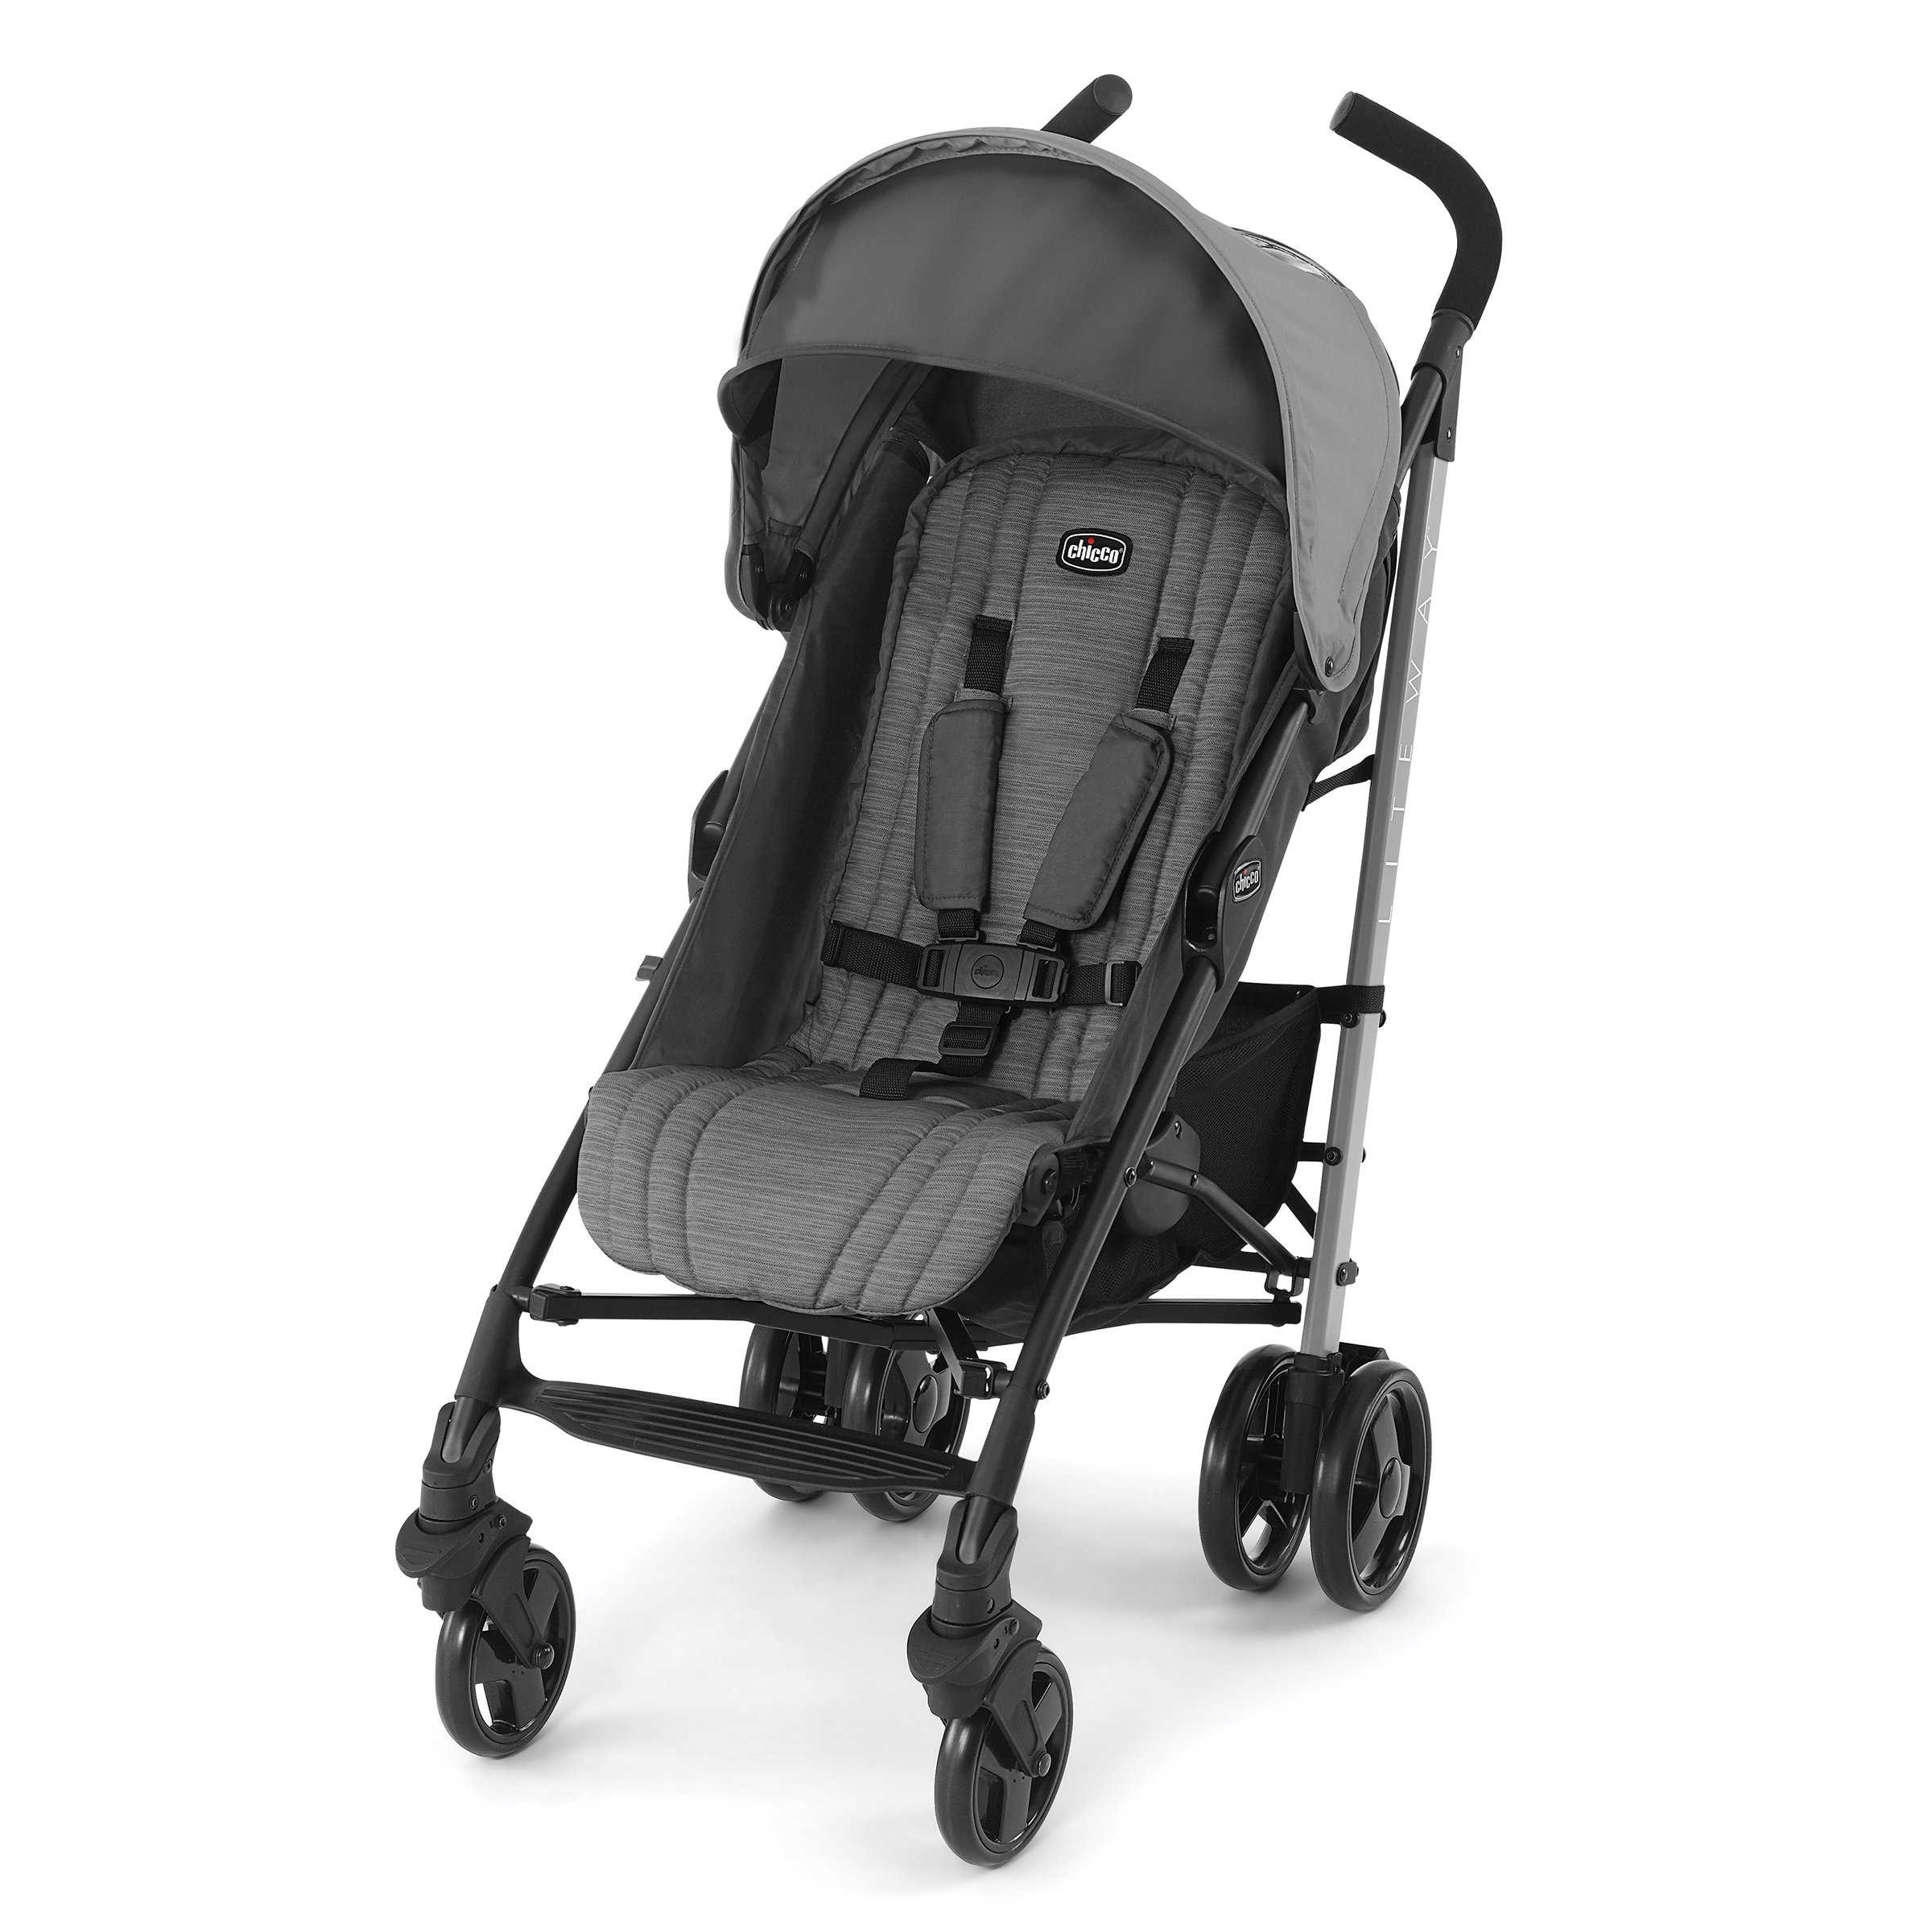 Chicco Liteway Stroller, Fog by Chicco (Image #1)